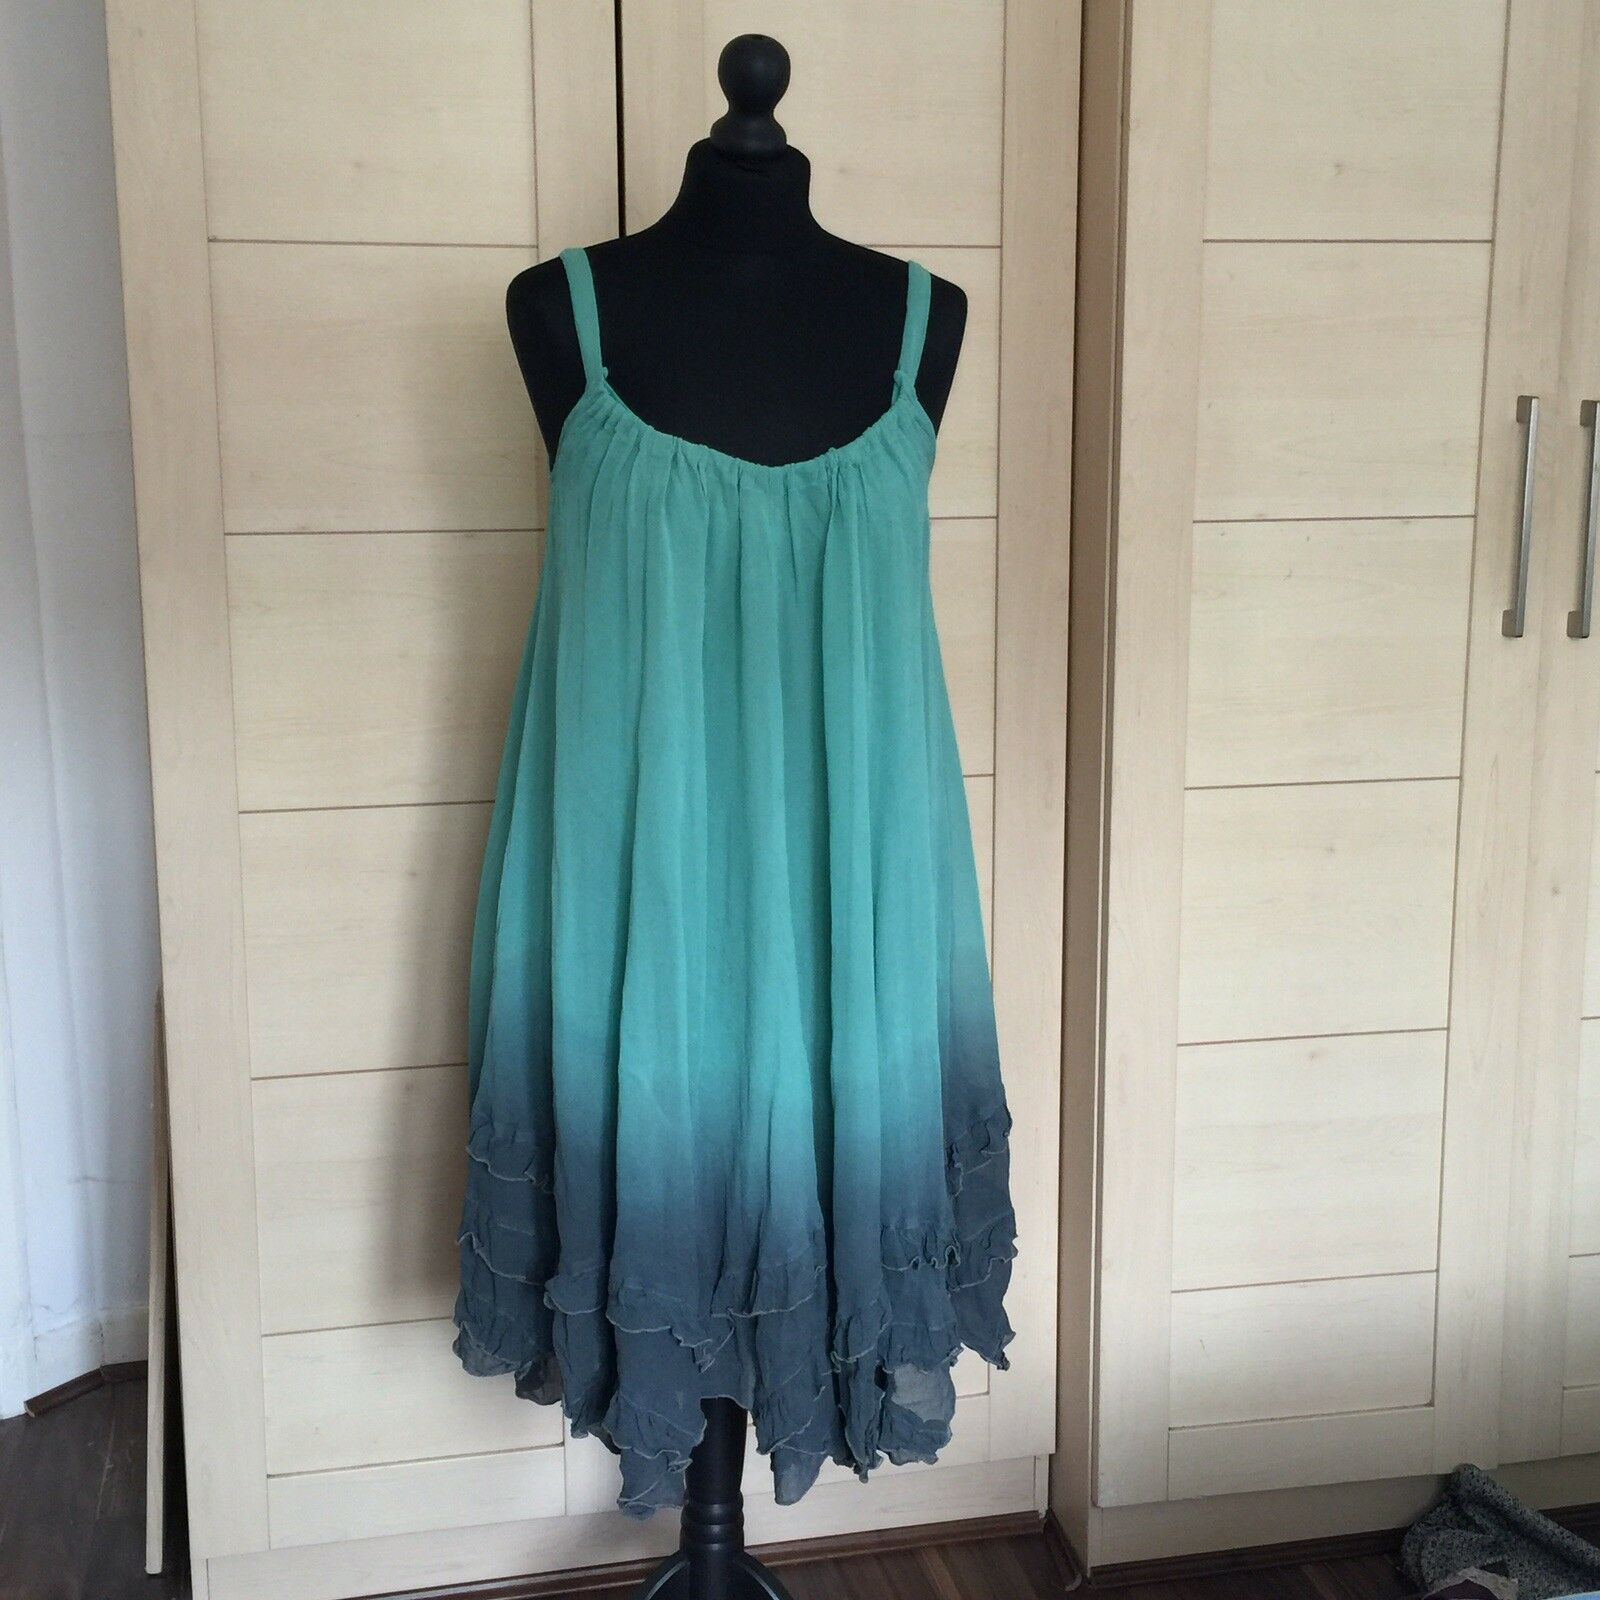 House of fraser Label Beach Dress Brand New With tag size 10 but can fit upto 14